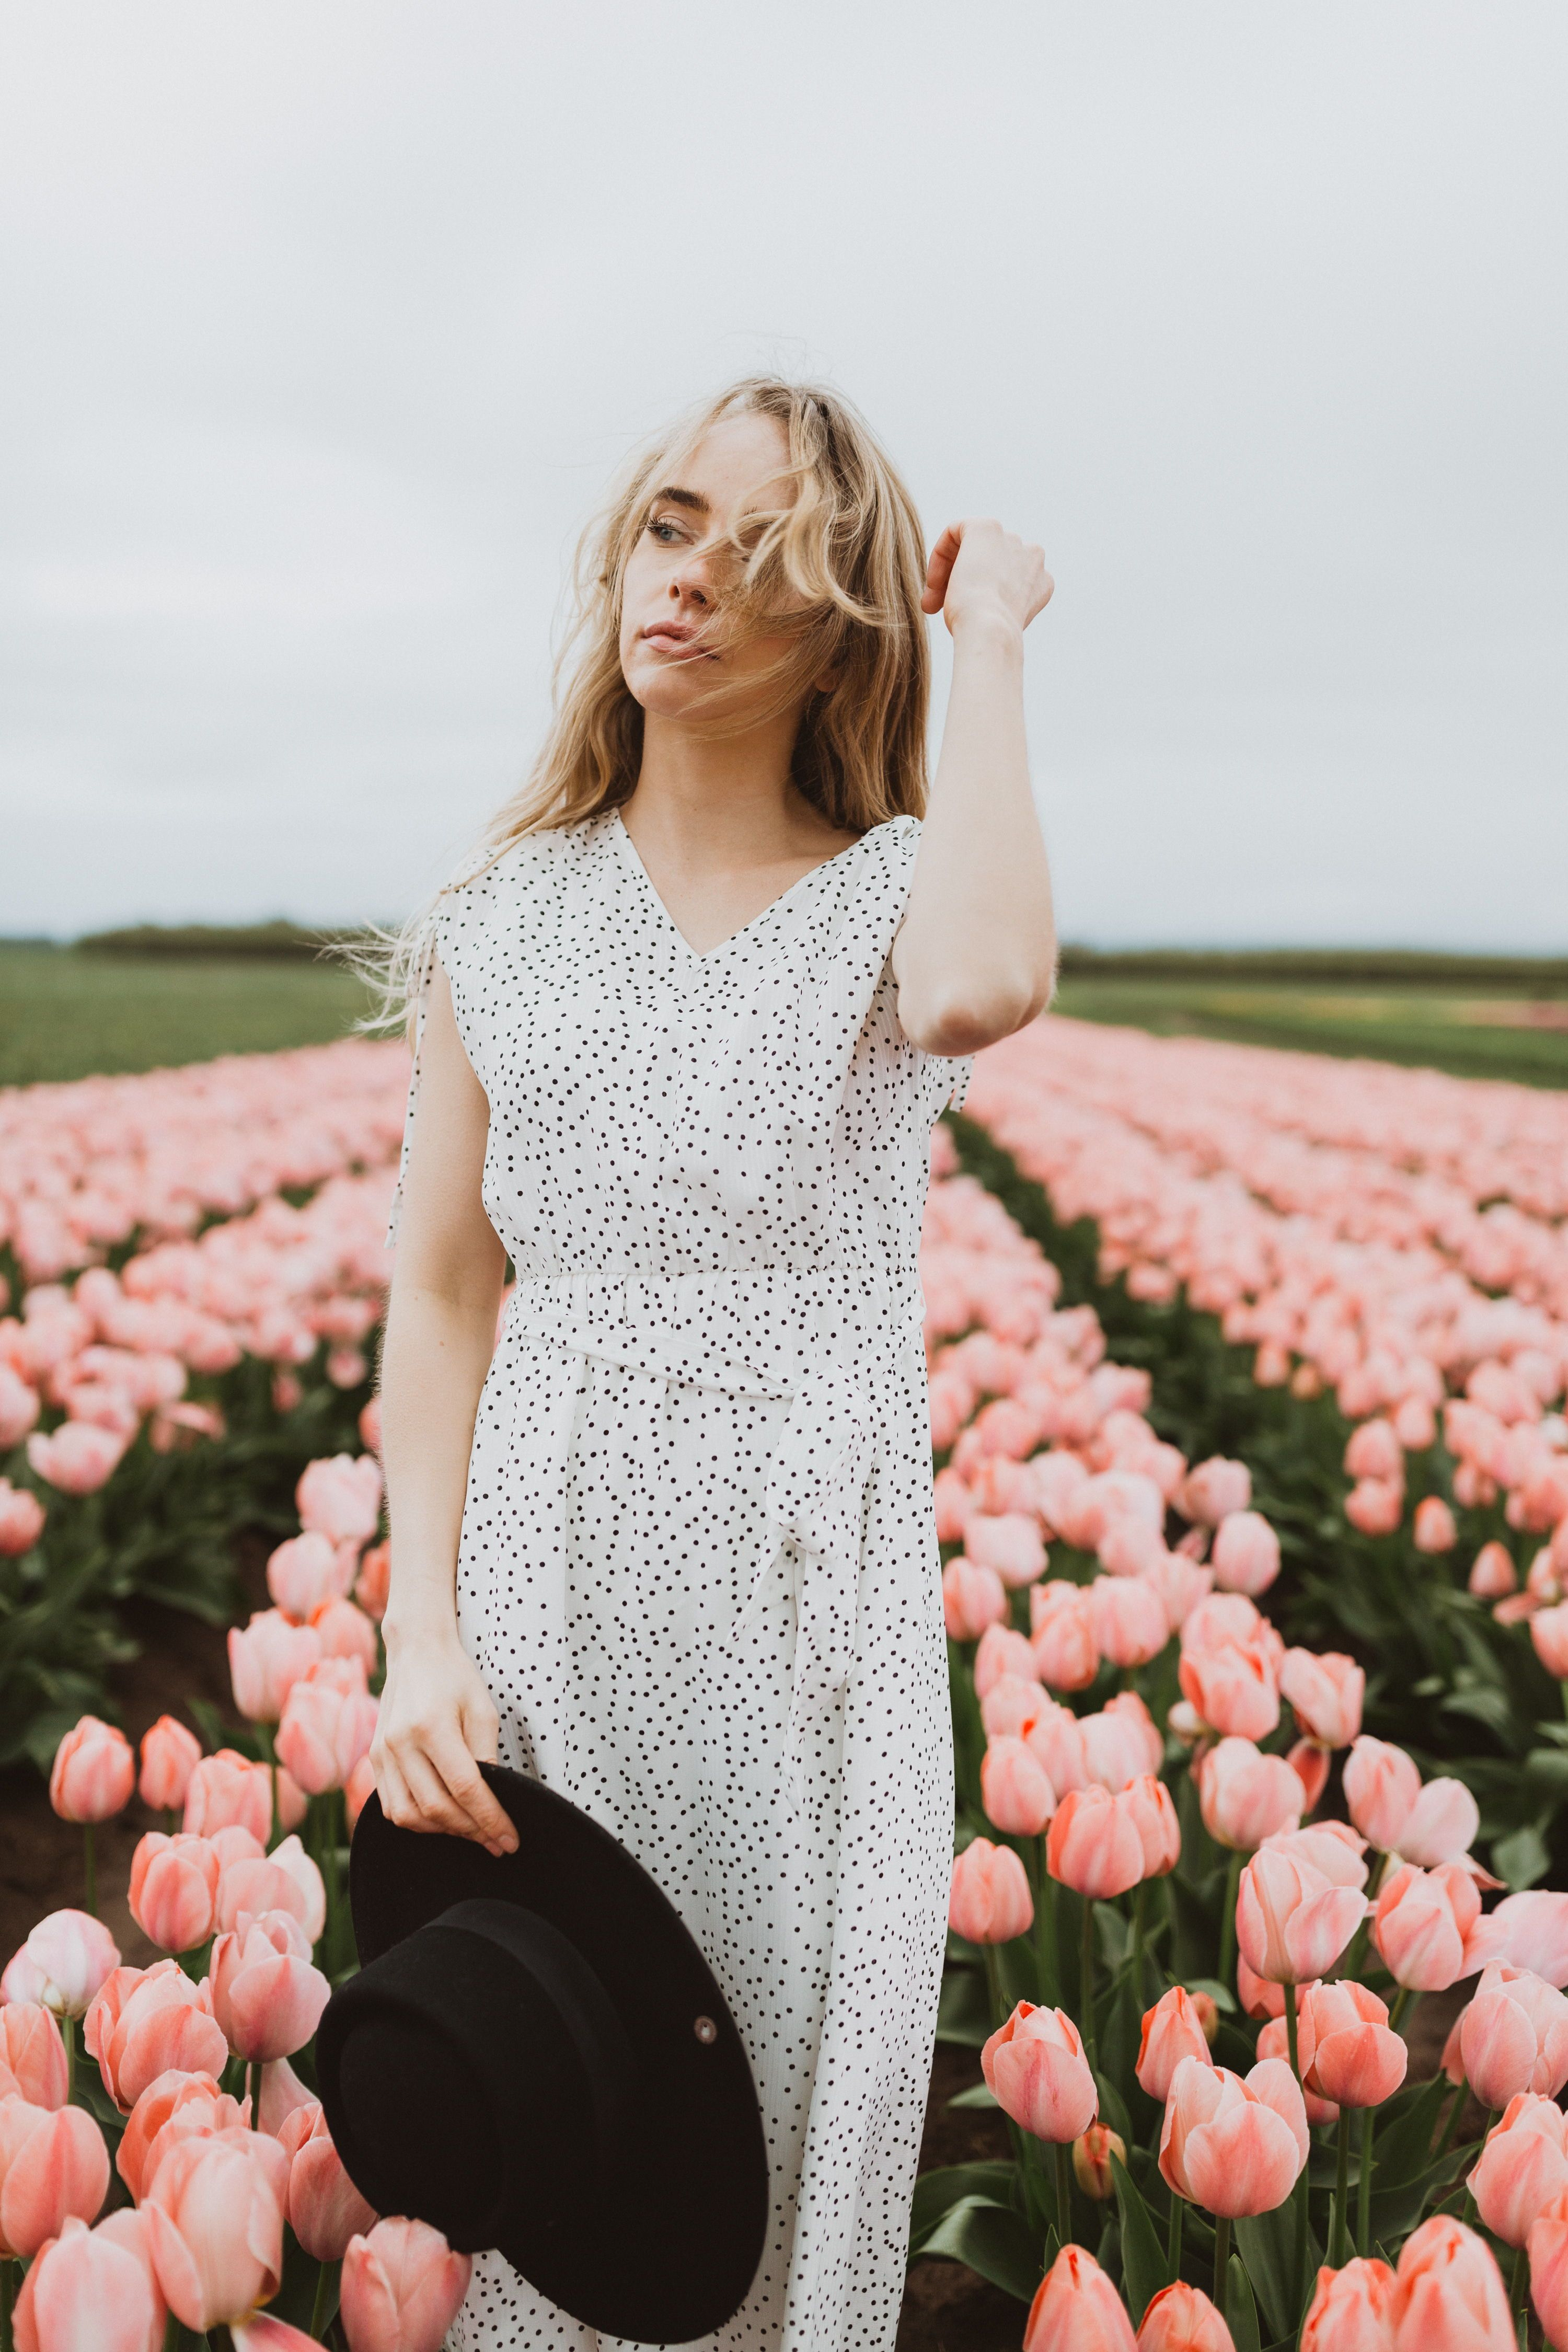 The Sweetener Tiny Dot Dress Is A White Dress With A Black Tiny Dot Pattern It Has Cinching Capabilities On The Sleeves Wh White Short Dress Dot Dress Dresses [ 4500 x 3000 Pixel ]